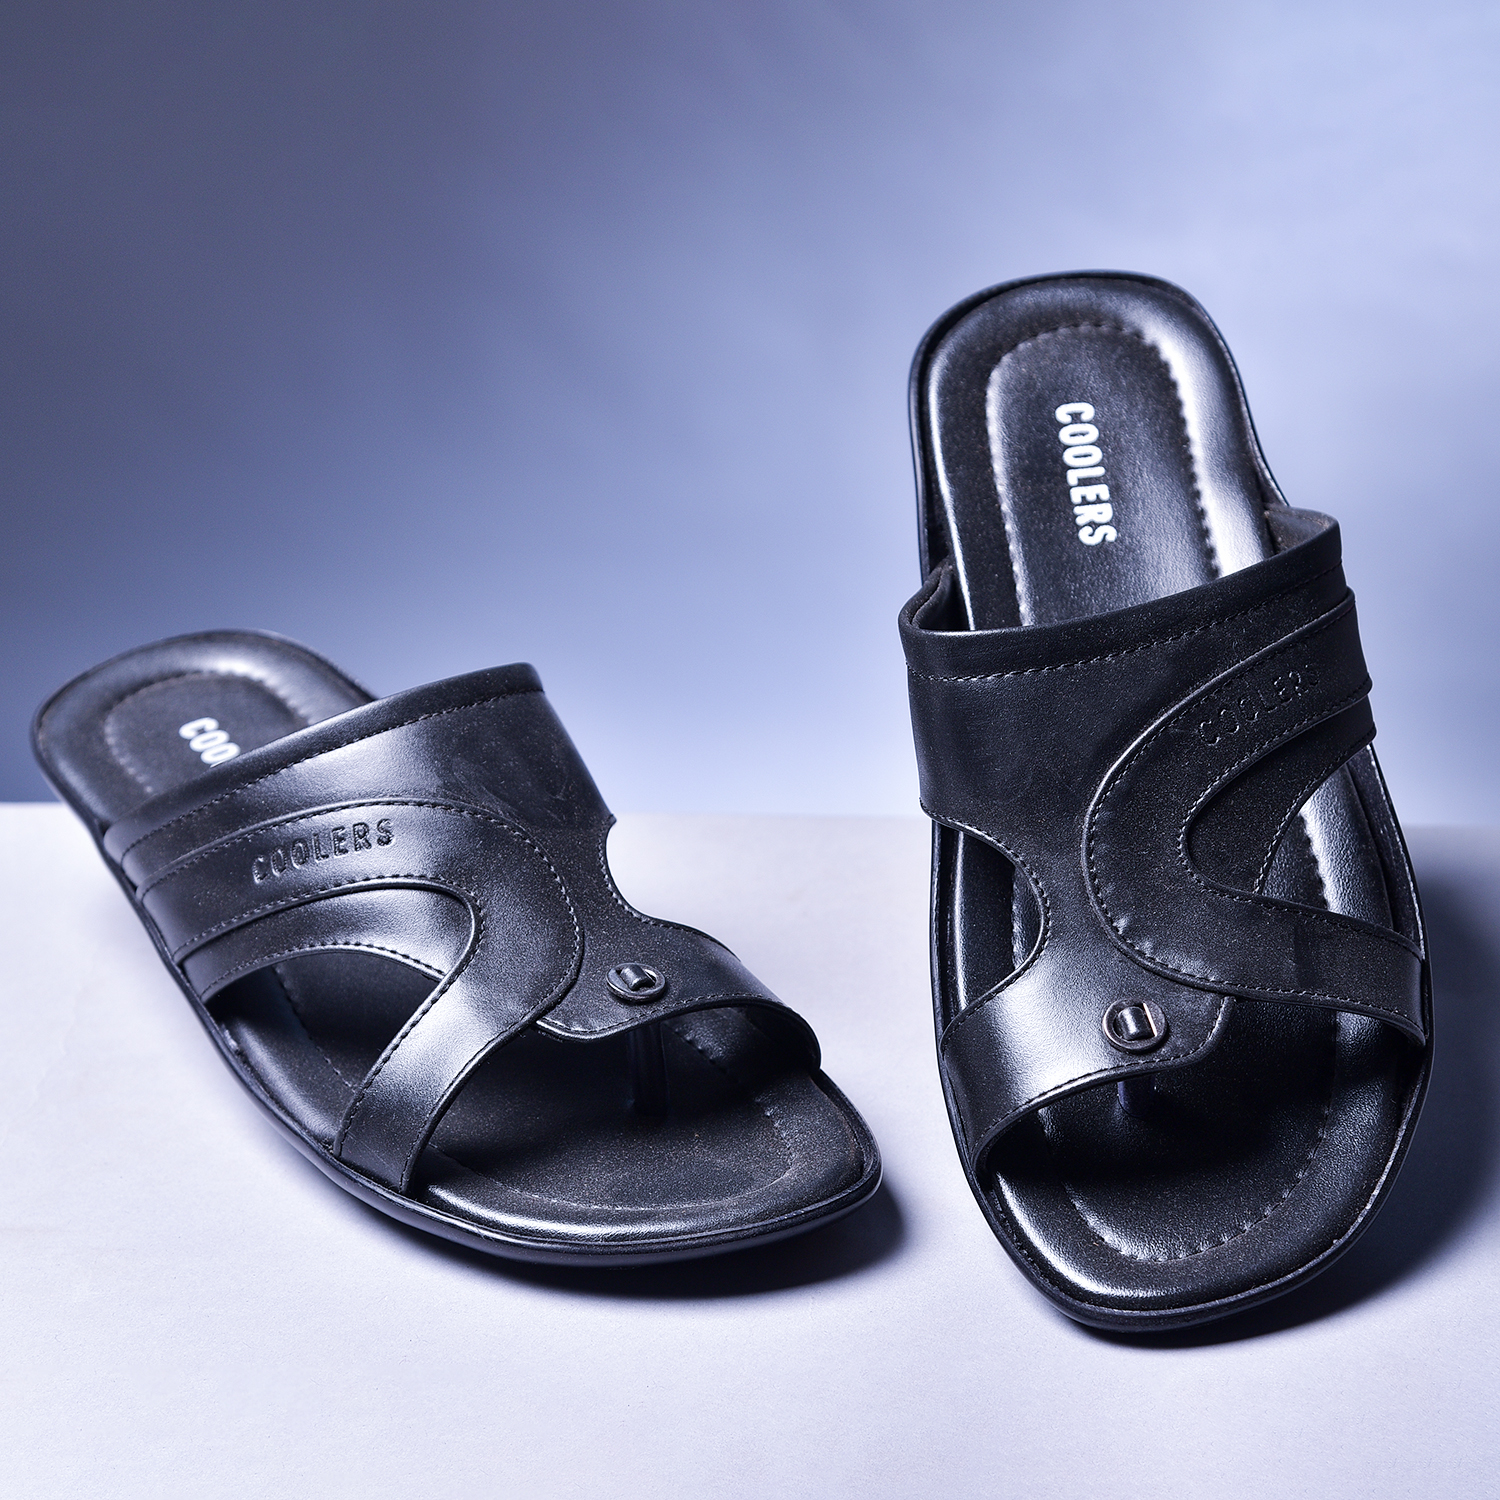 Liberty   Coolers by Liberty Black Sandals